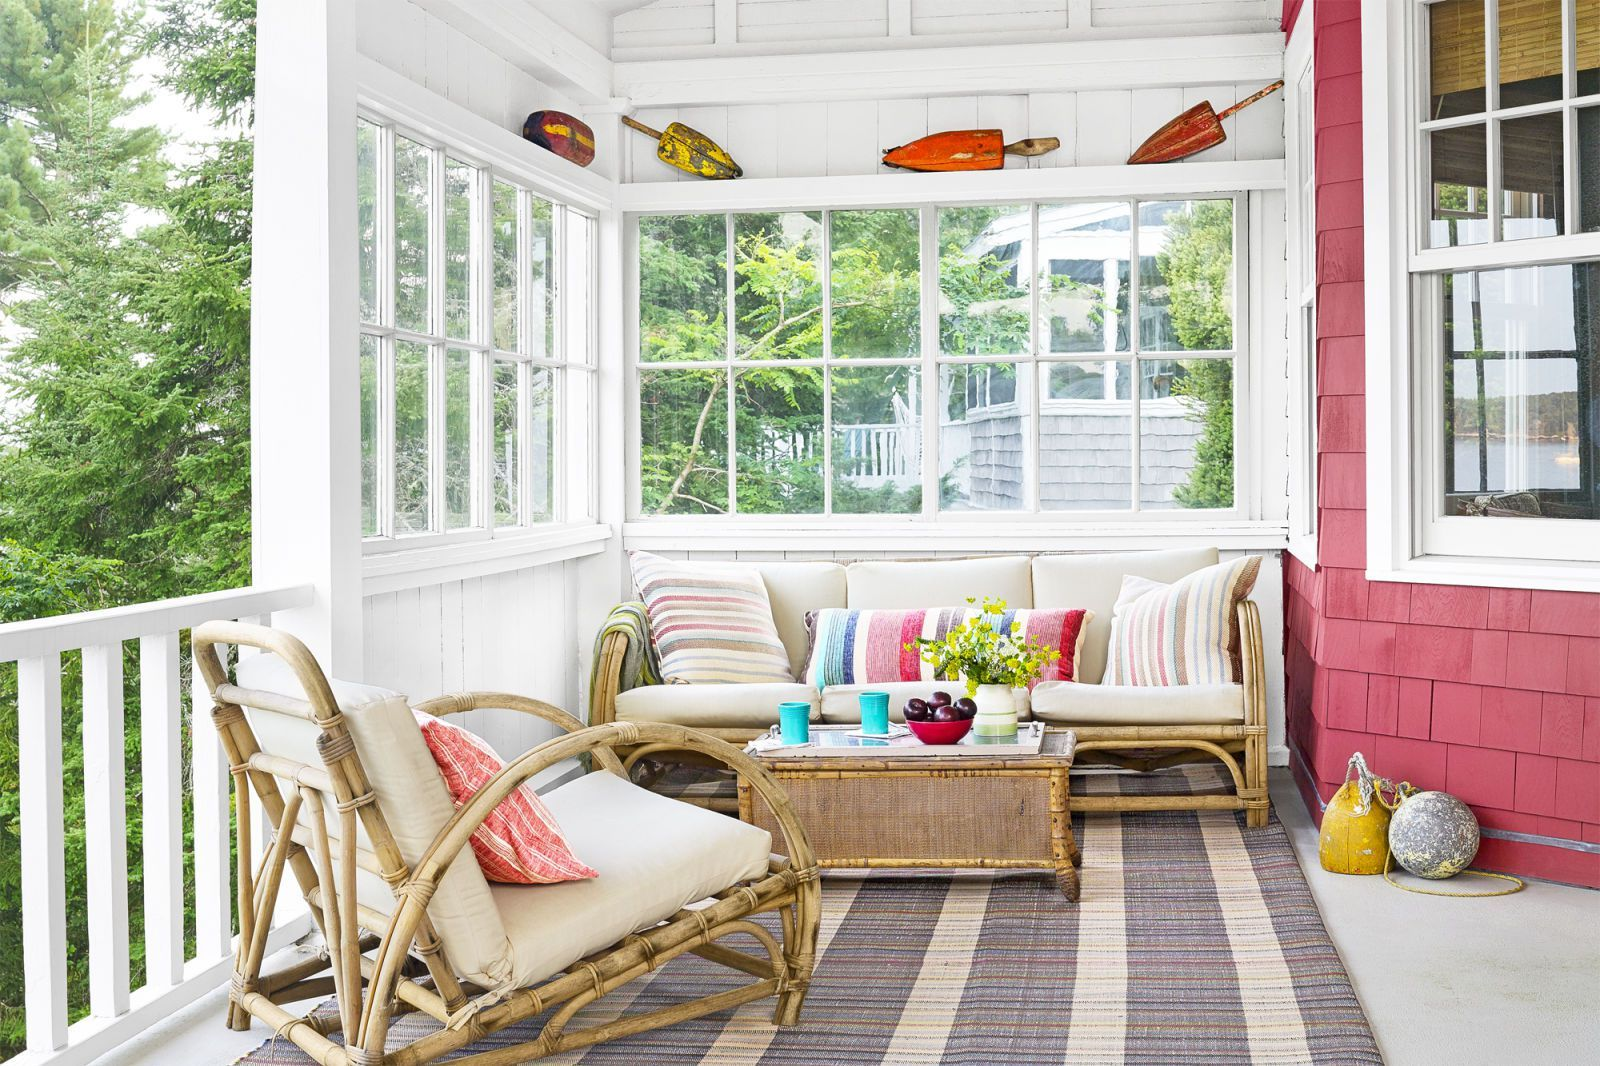 60+ Best Patio Designs for 2018 - Ideas for Front Porch ... on Long Patio Ideas id=66853